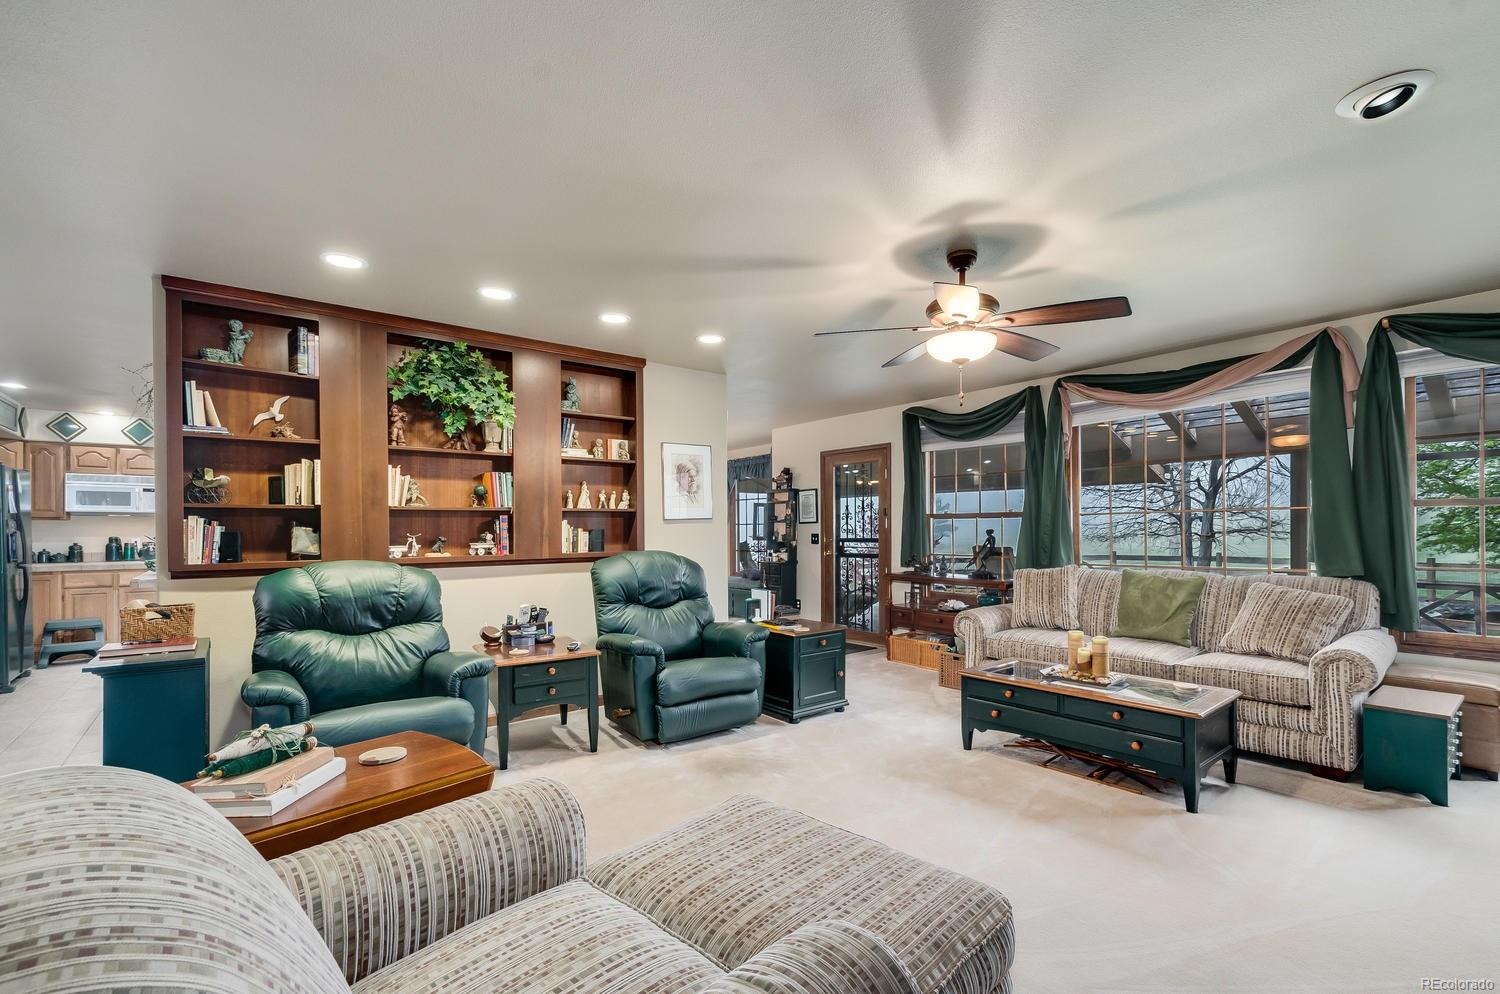 Large windows offer plenty of natural light as well as a view of Green Mountain!